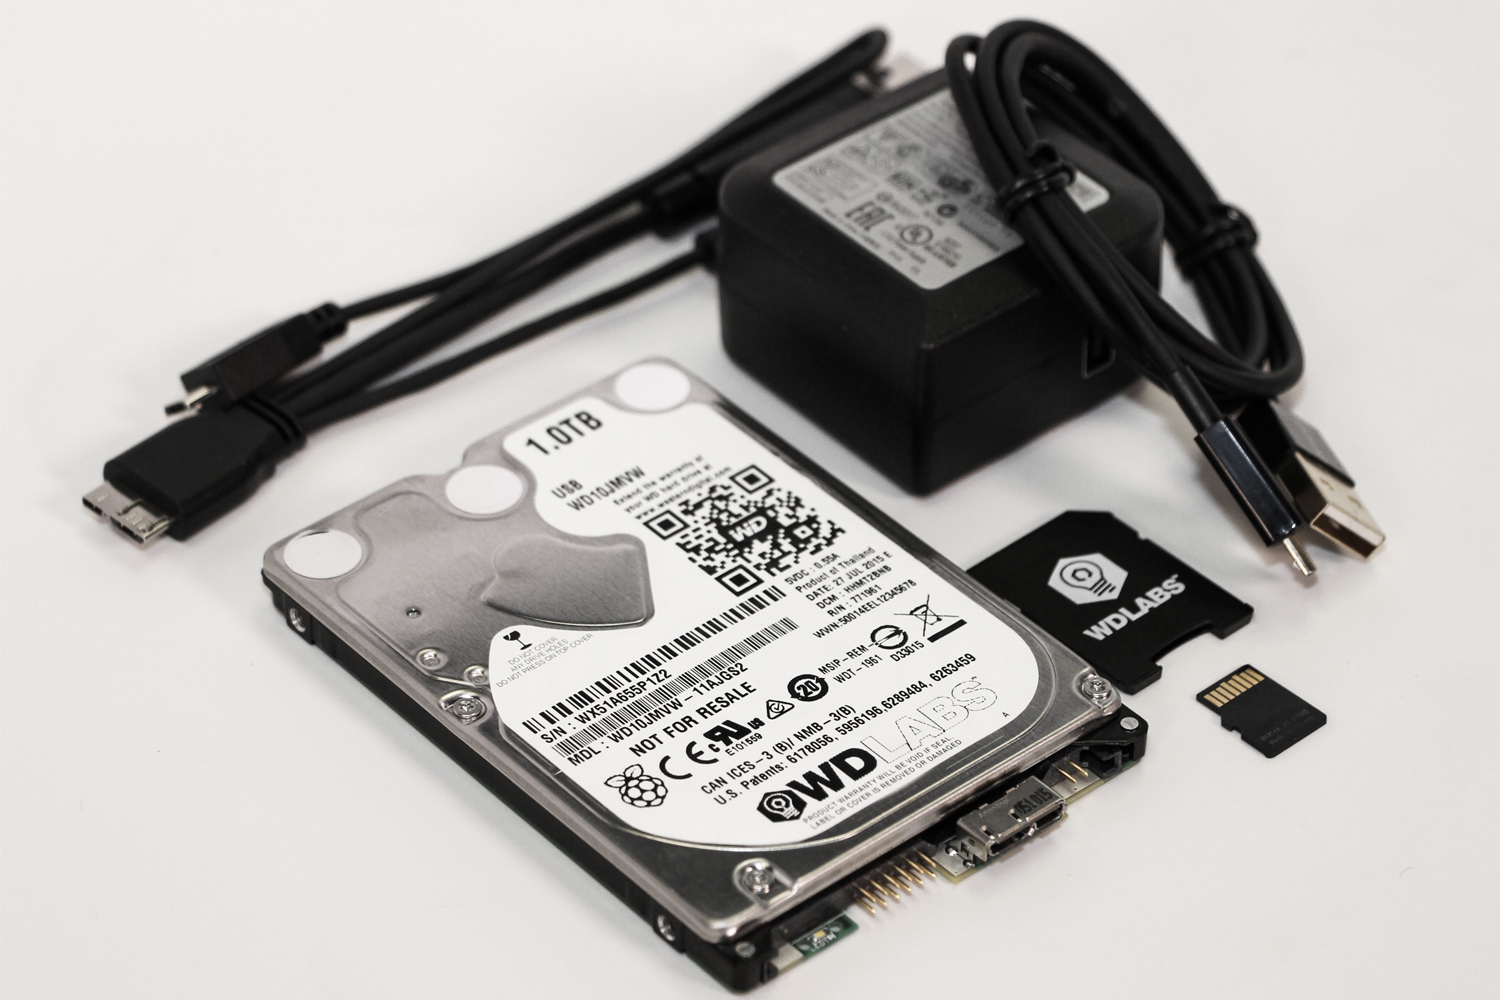 Pidrive Raspberry Pi Hdd From Western Digital Gives The